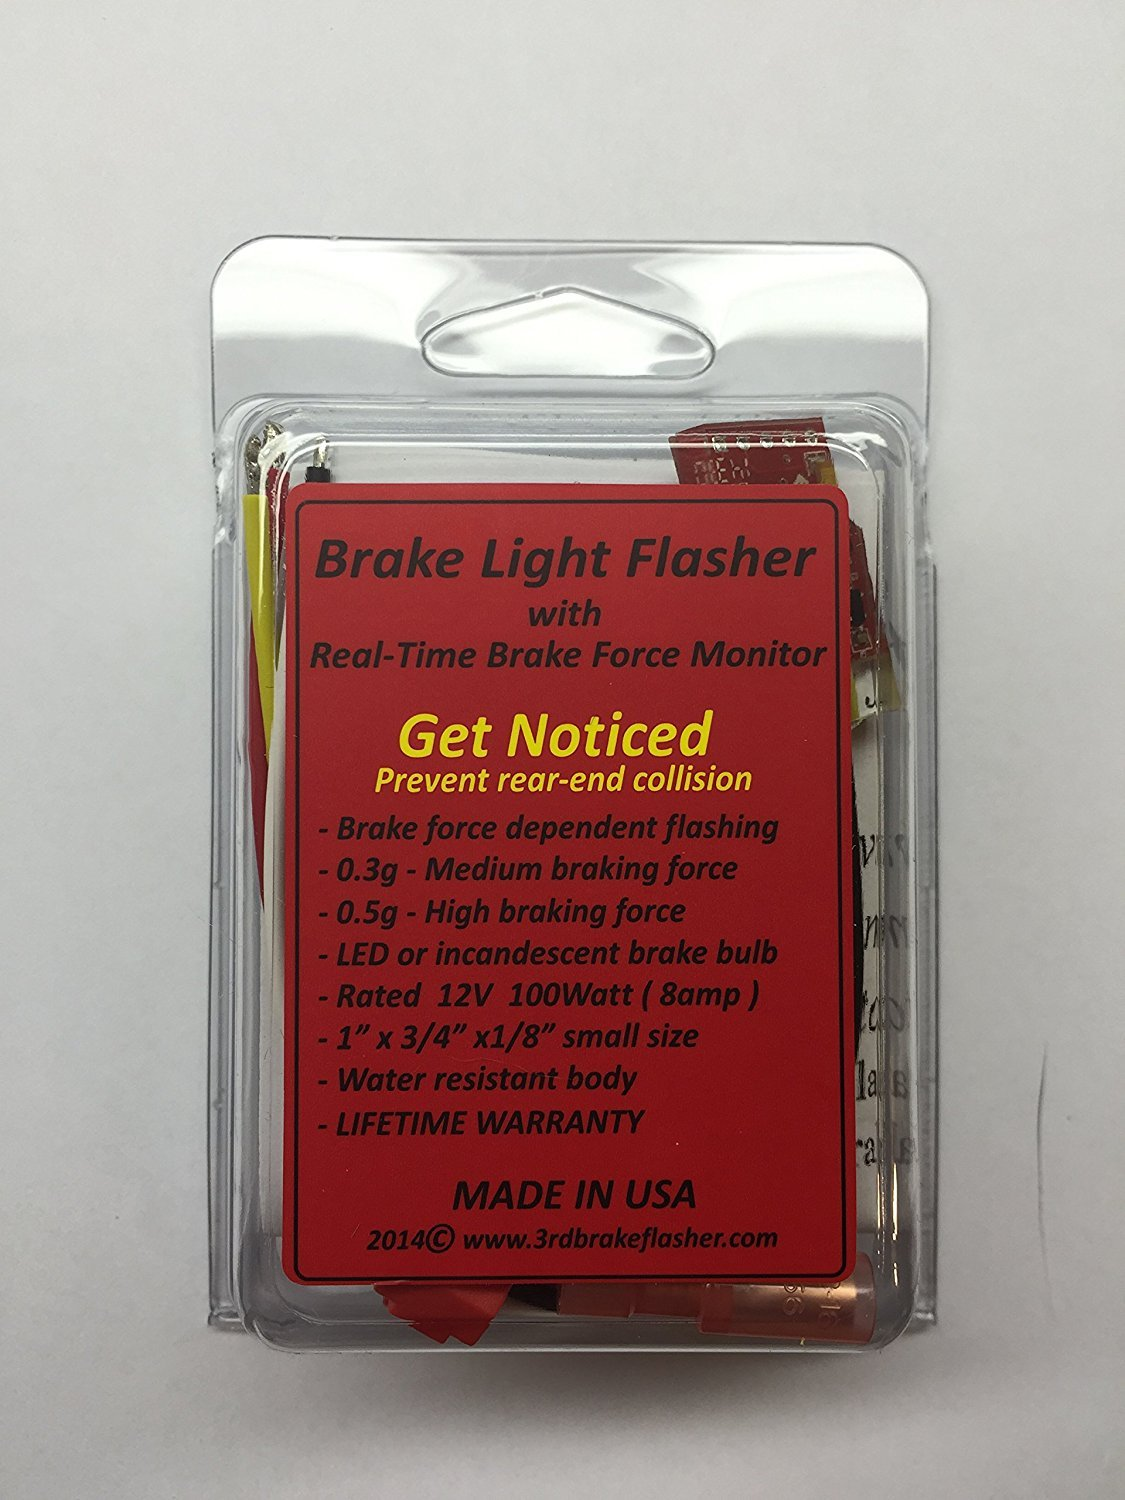 Car Or Motorcycle Brake Light Flasher Module With Real Check For 12v At The Lg Wire Stoplamp Switch On Pedal Time Force Monitoring Fully Configurable Fits Any Automotive